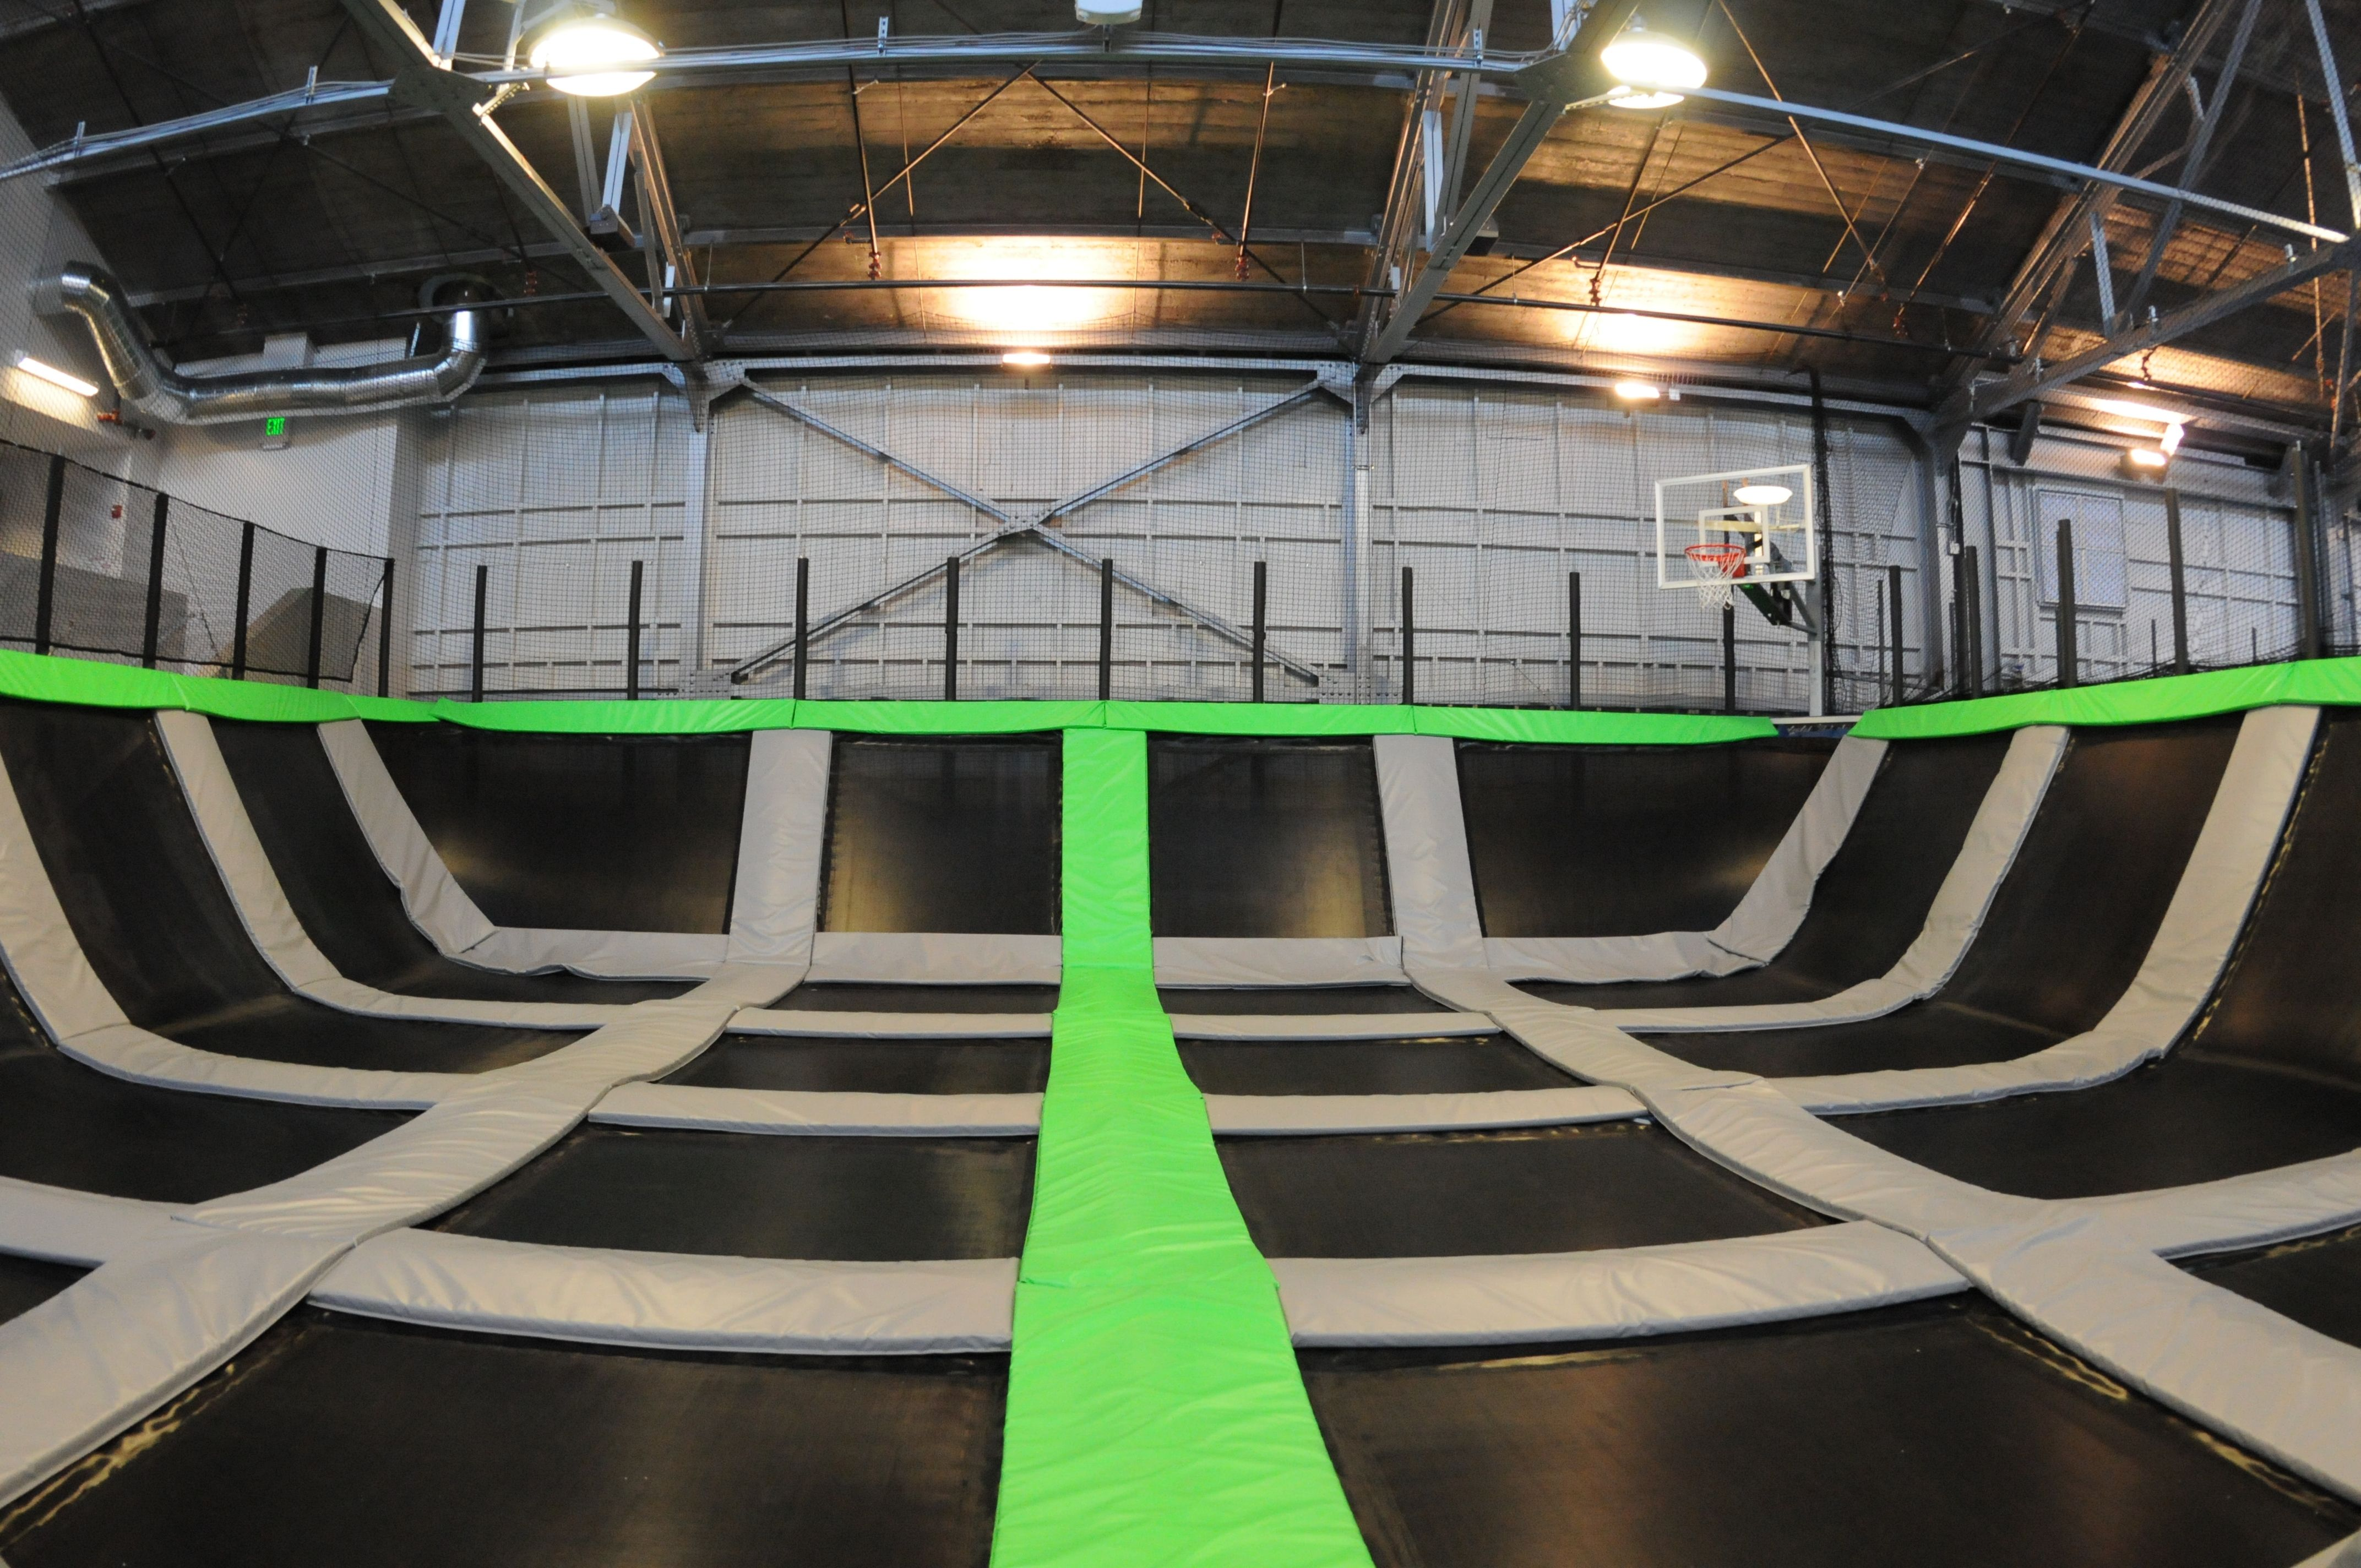 Trampoline room in house -  And Then I Saw This Place House Of Air In Trampoline Roomextreme